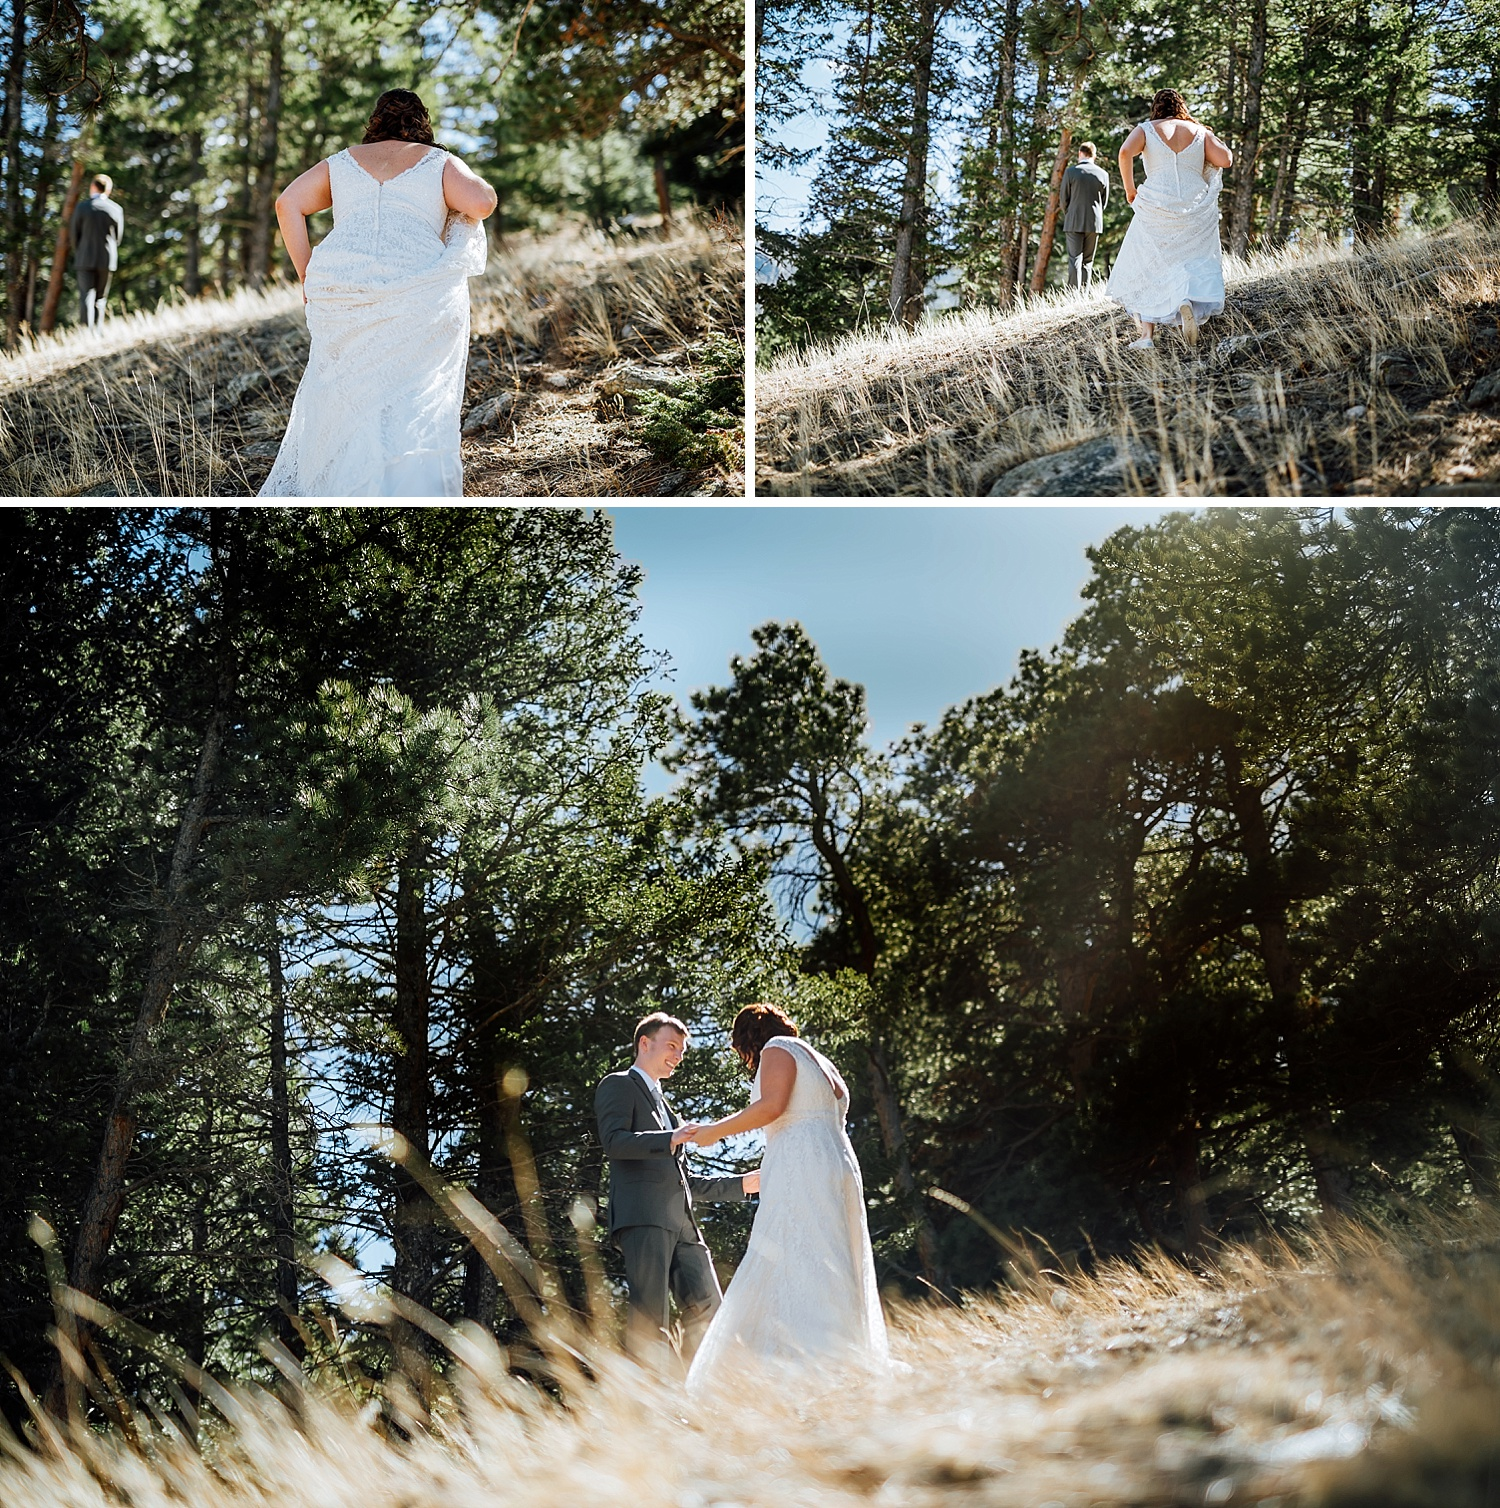 I think I want to do a first look for my wedding. I love how this was taken in the mountains- her white dress really pops against the trees and the look on his face is so cute! Photo by Maddie Mae photography